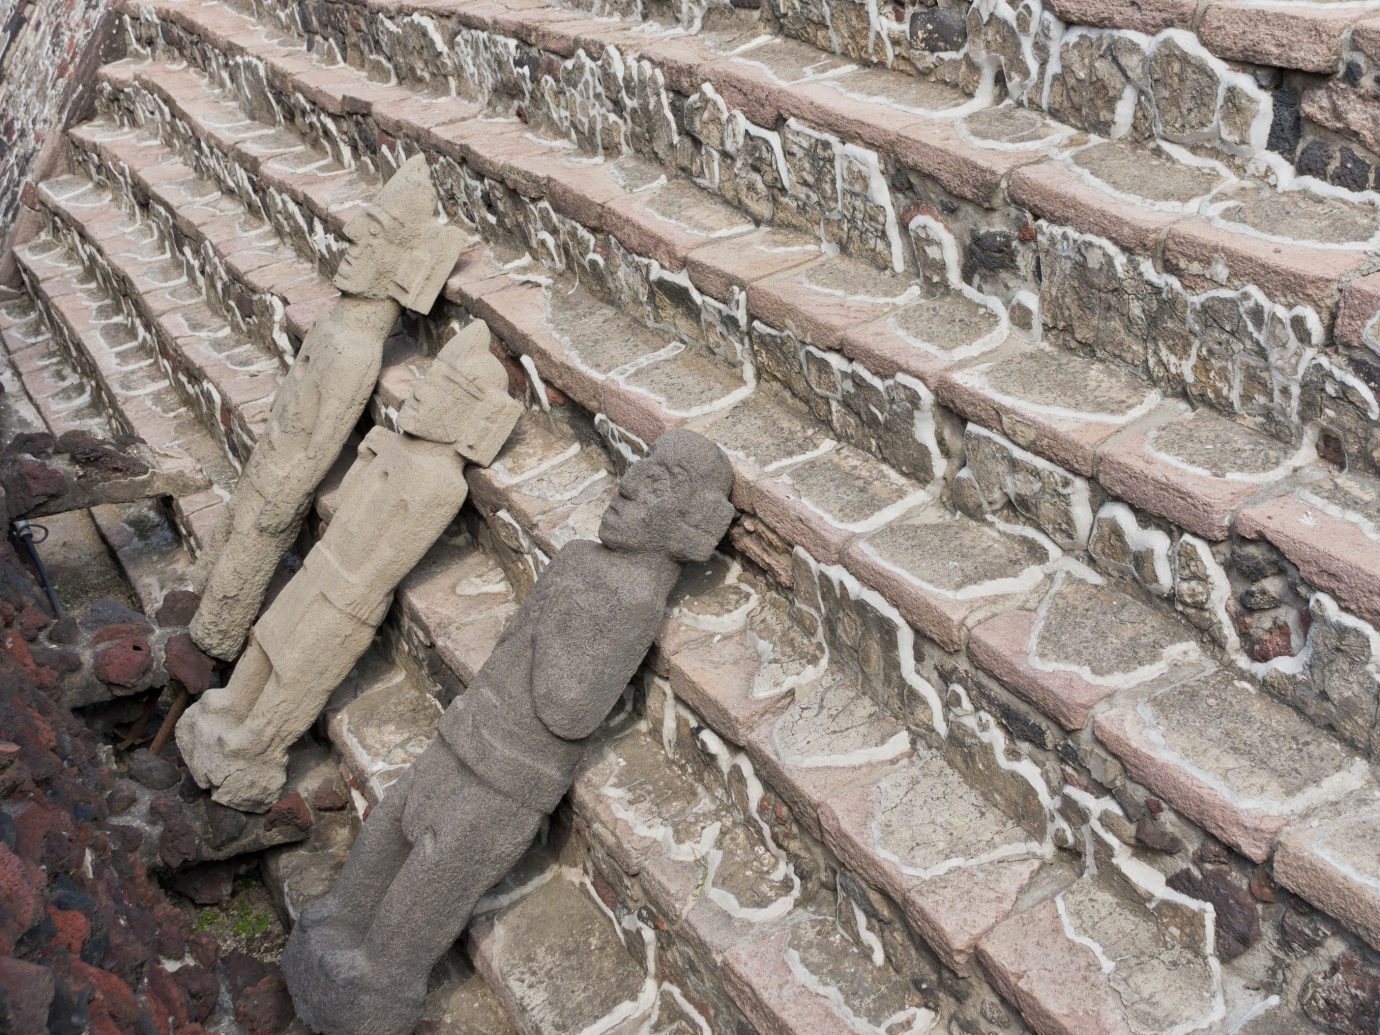 Arts + Culture Mexico City Travel Tips Trip Ideas stone carving ancient history archaeological site wall Ruins carving stone wall history historic site rock geology relief